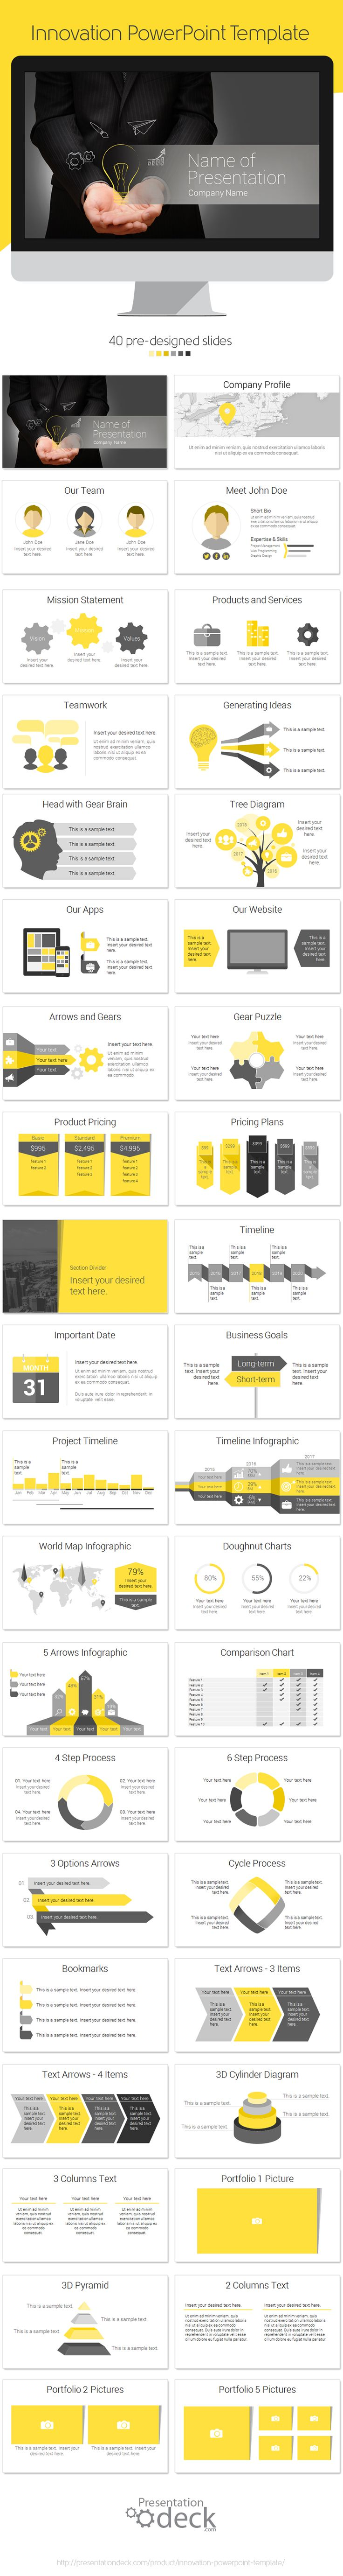 The 100 best PowerPoint images on Pinterest | Presentation, Role ...